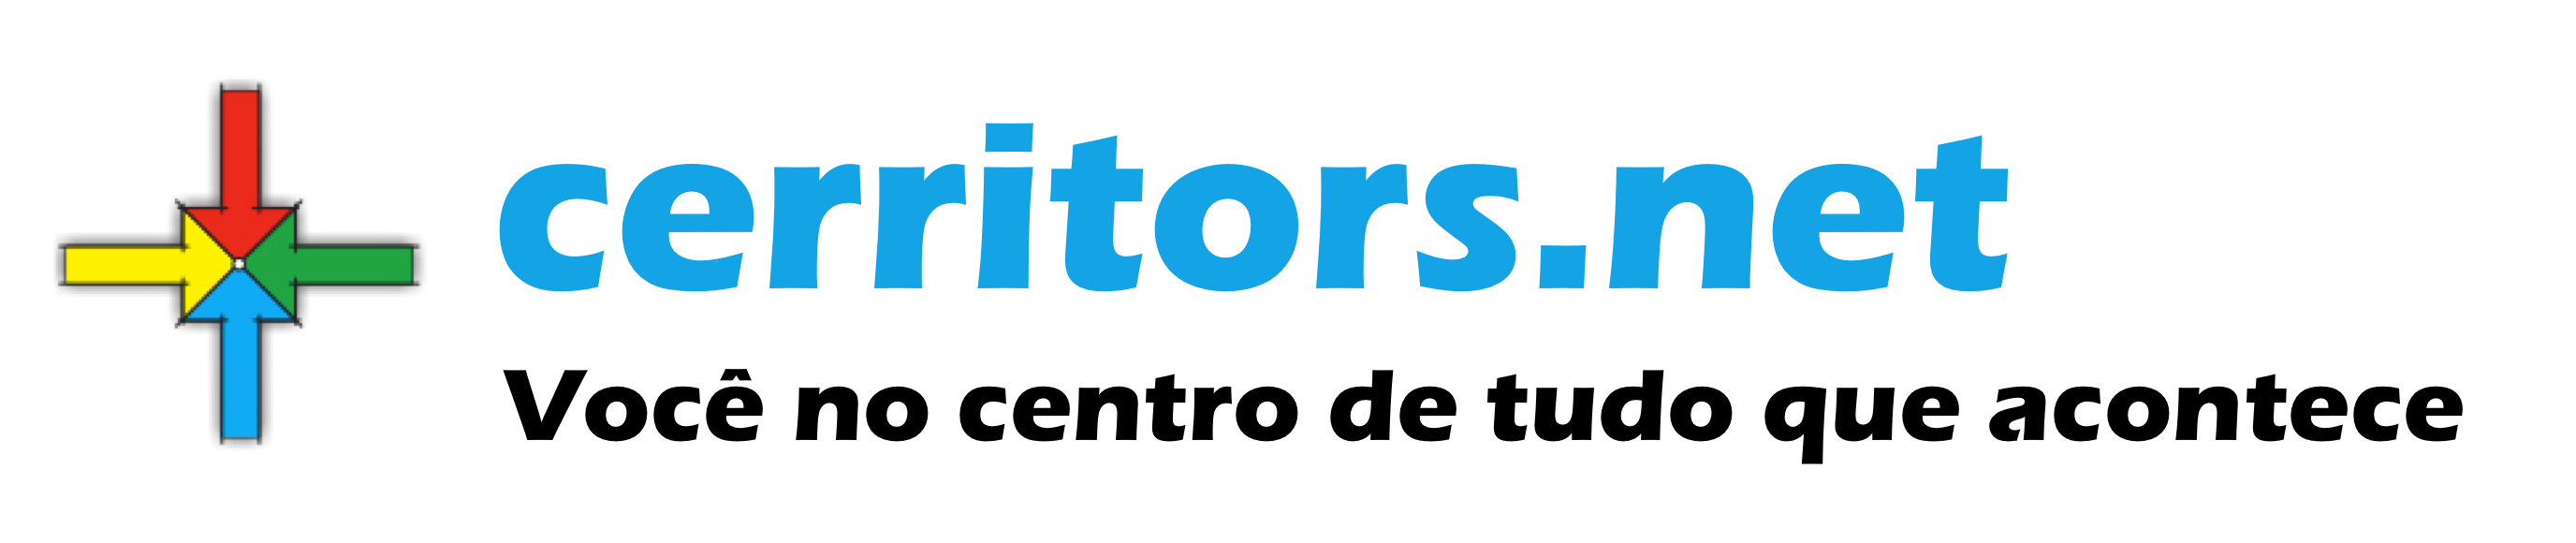 Header cerritors.net@2x